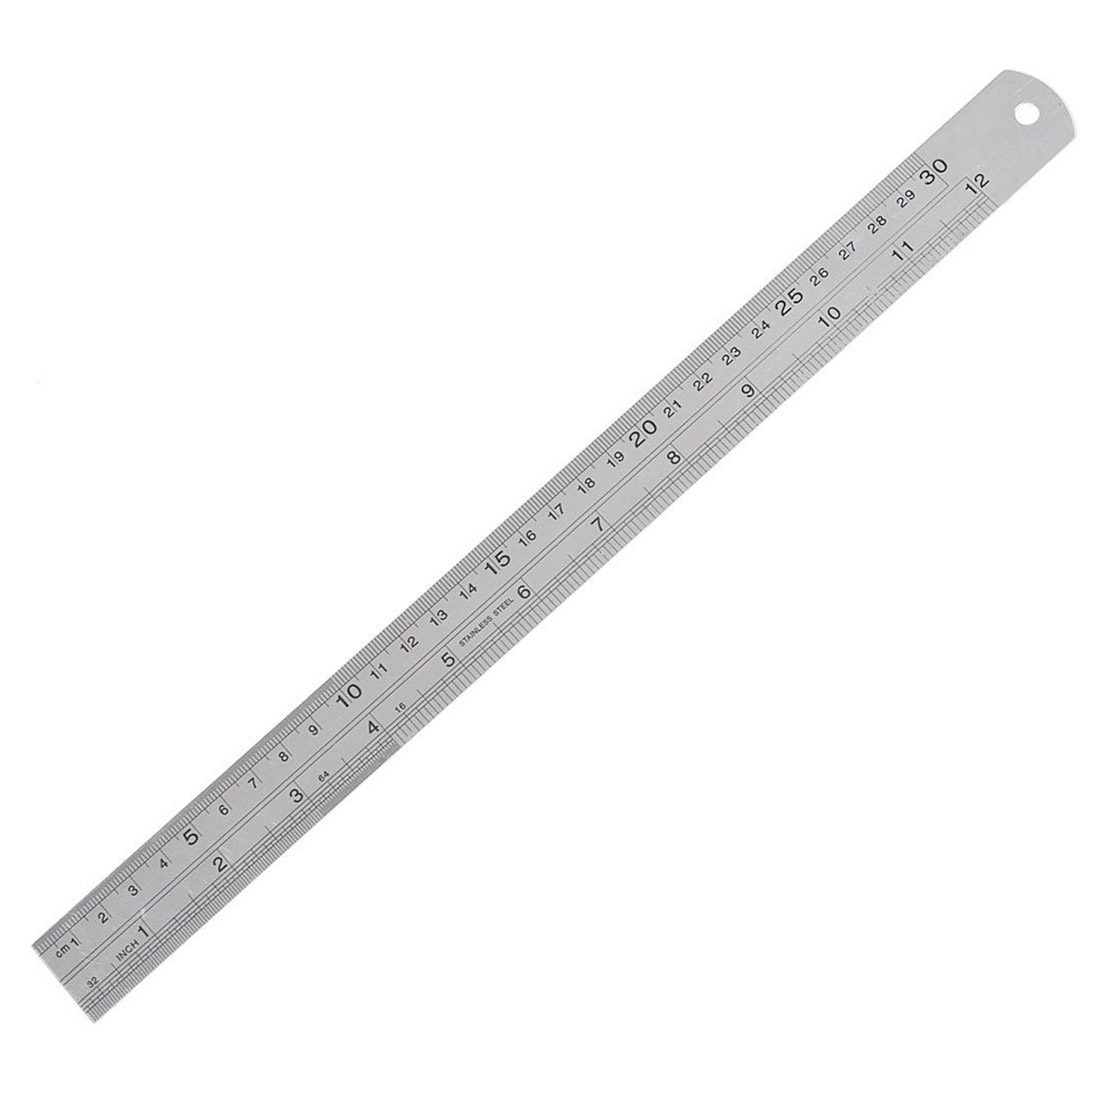 PPYY NEW -12 Inch Double Sided Metal Steel Measuring Ruler Scale Office Supply